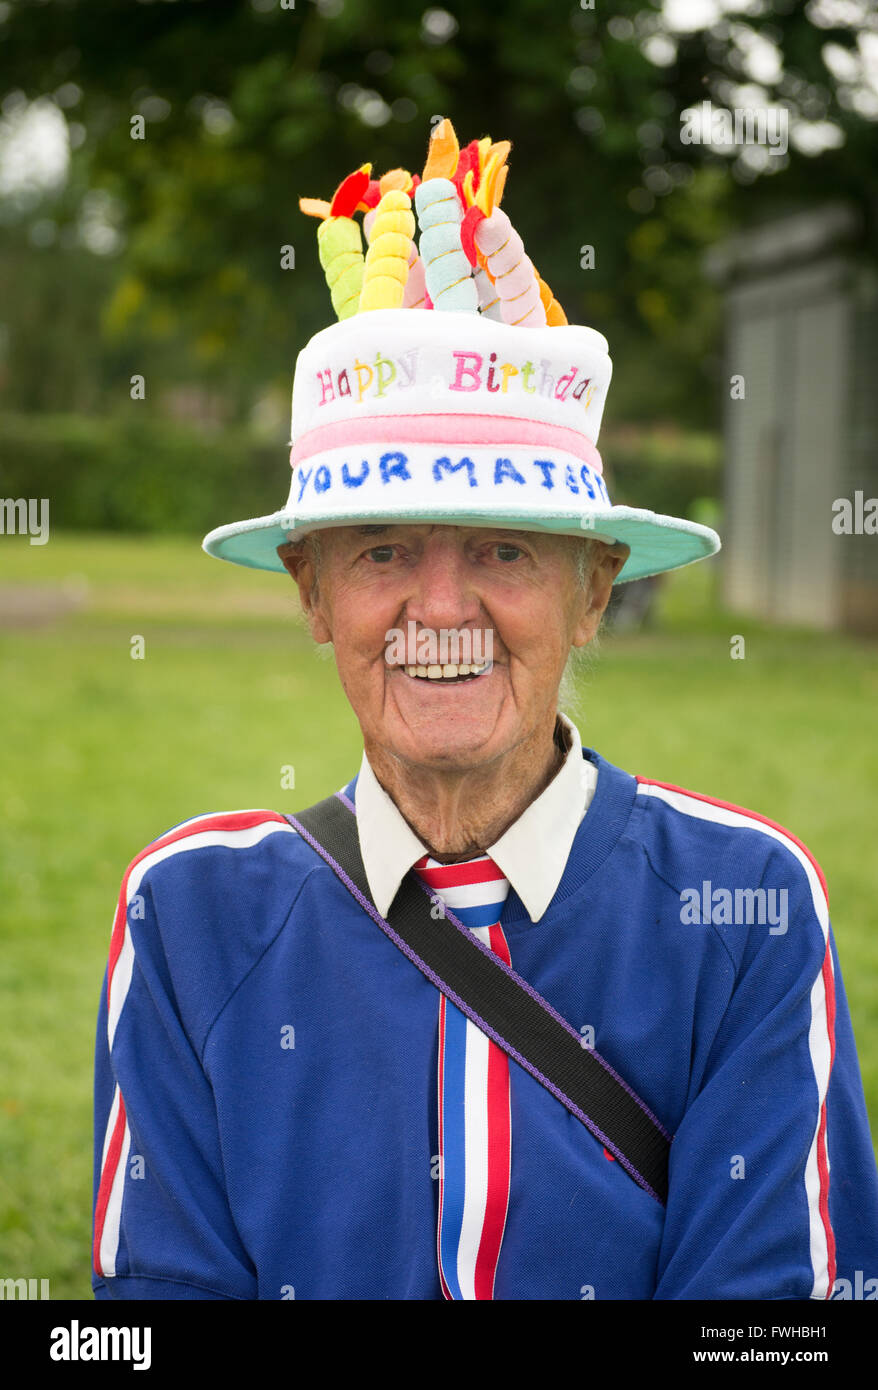 A Smiling Elderly Man Wearing Birthday Cake Hat With Candles On Top During The Queens 90th Celebrations In Fordingbridge Hampshire UK June